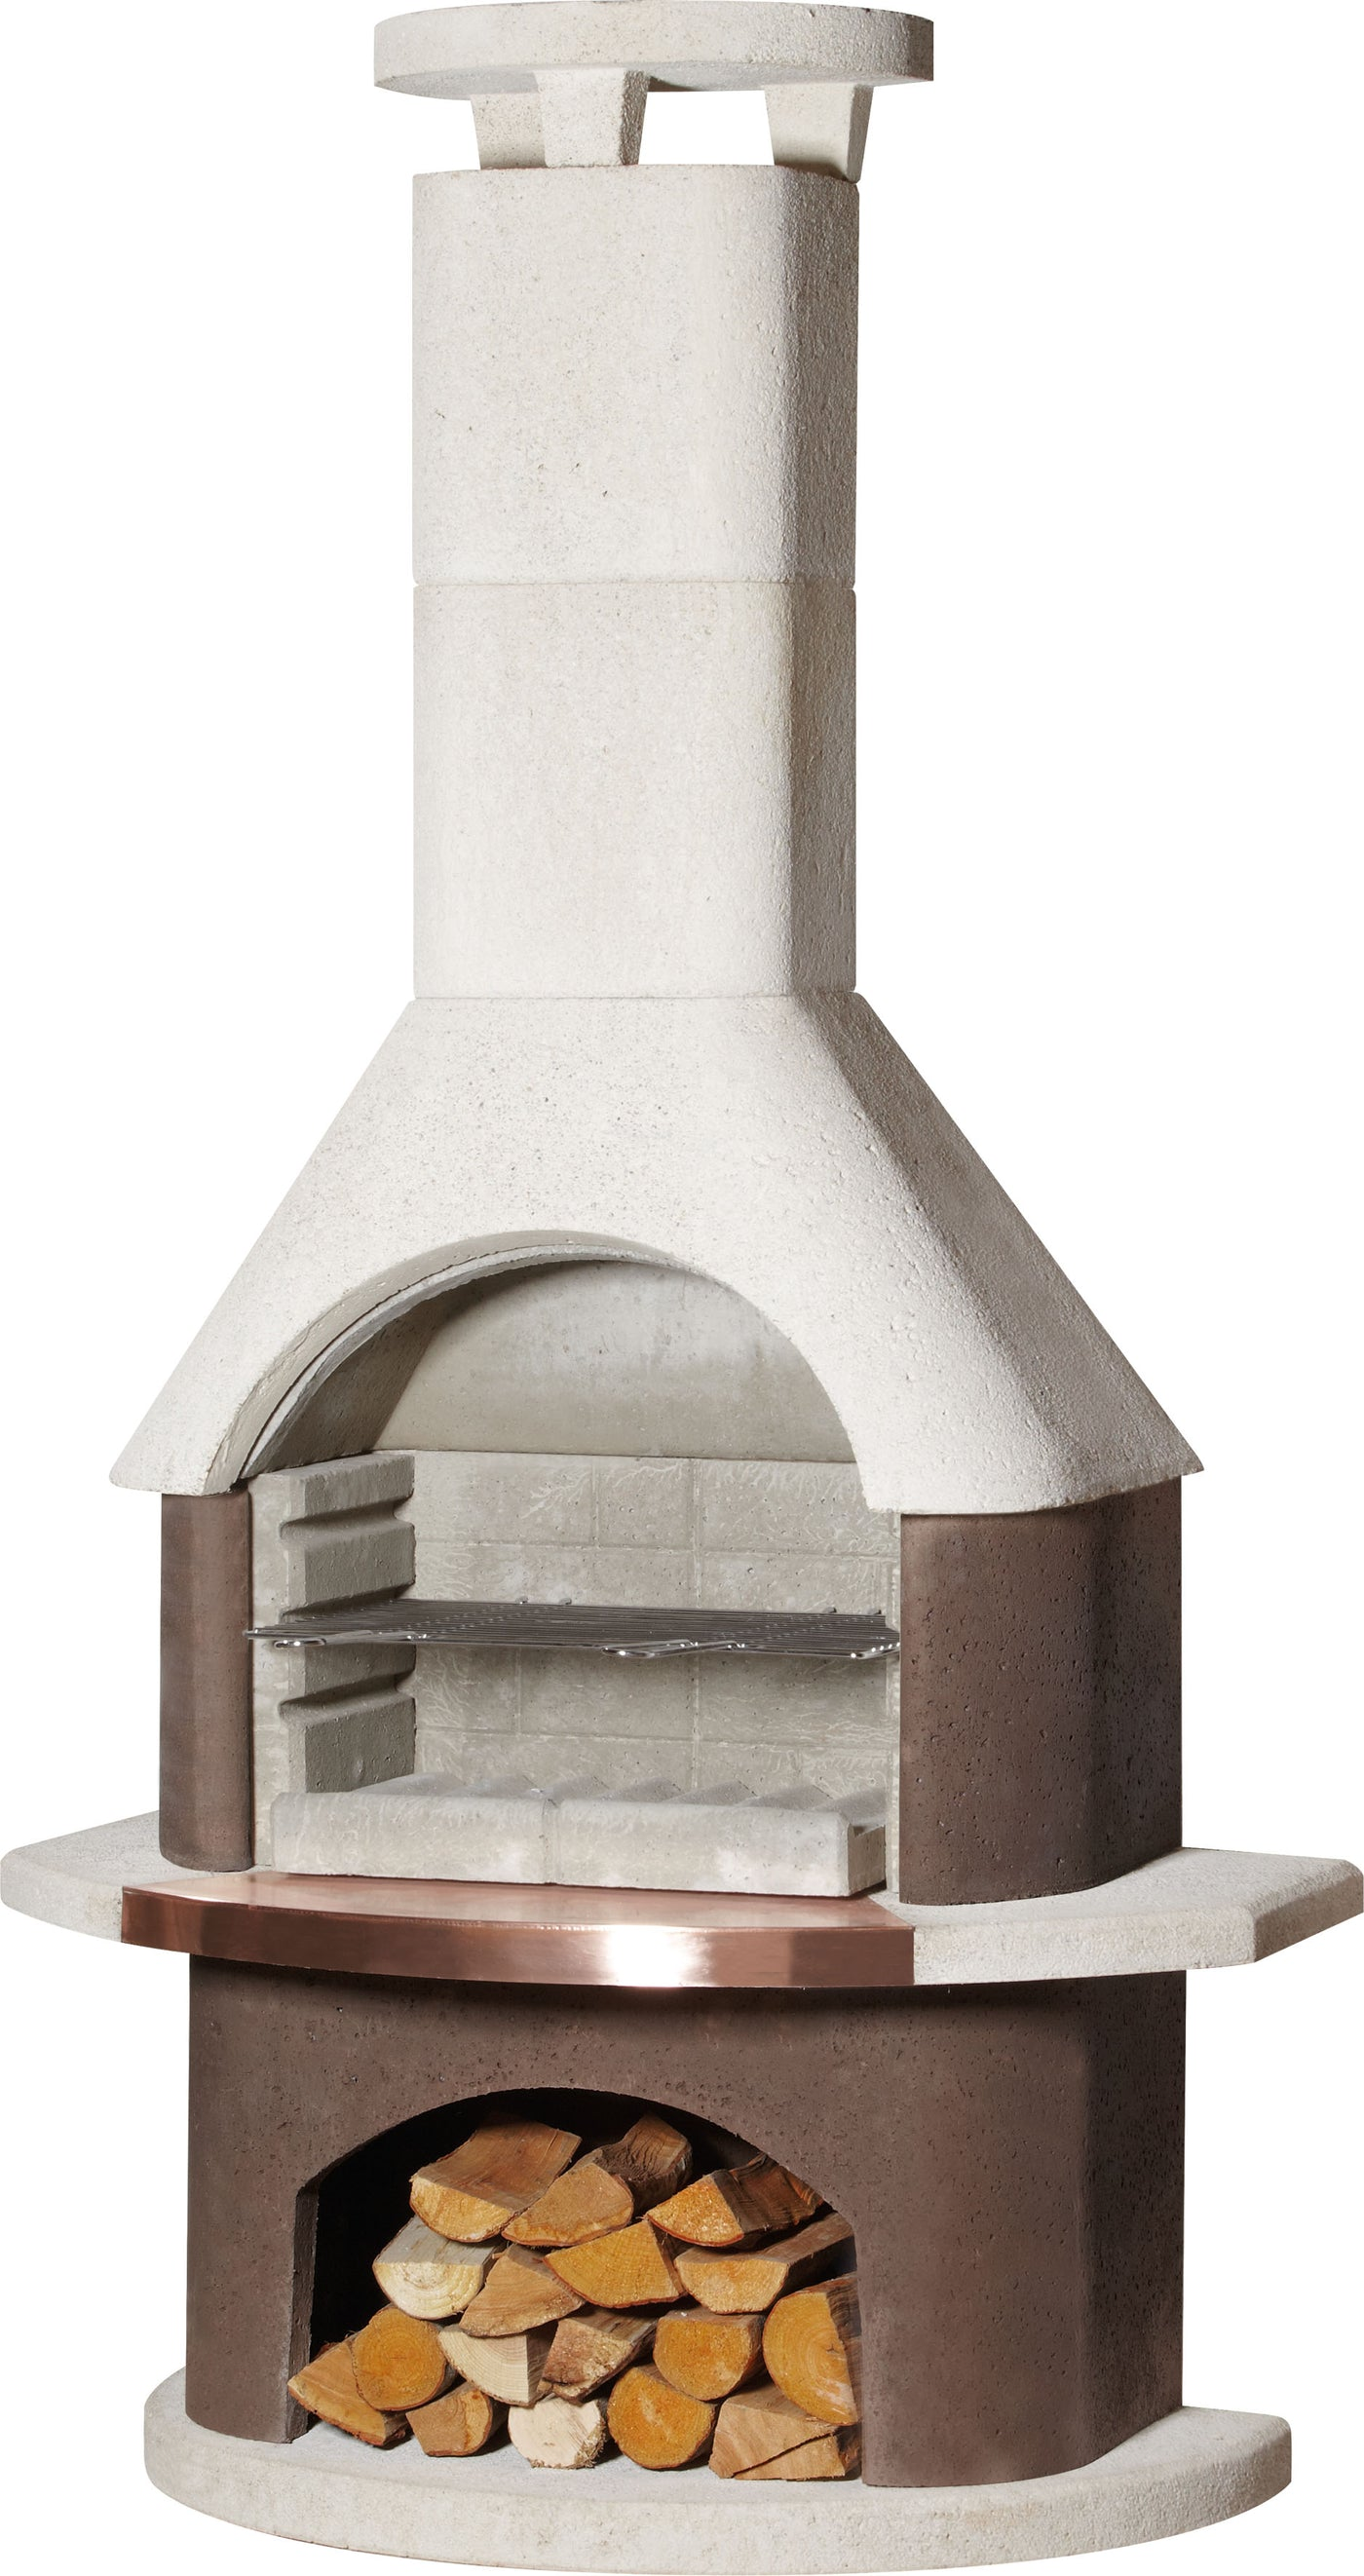 San Remo Diy Outdoor Fireplace Kit Bbq Grill Combo Pizza Oven All In One Buschbeck Usa